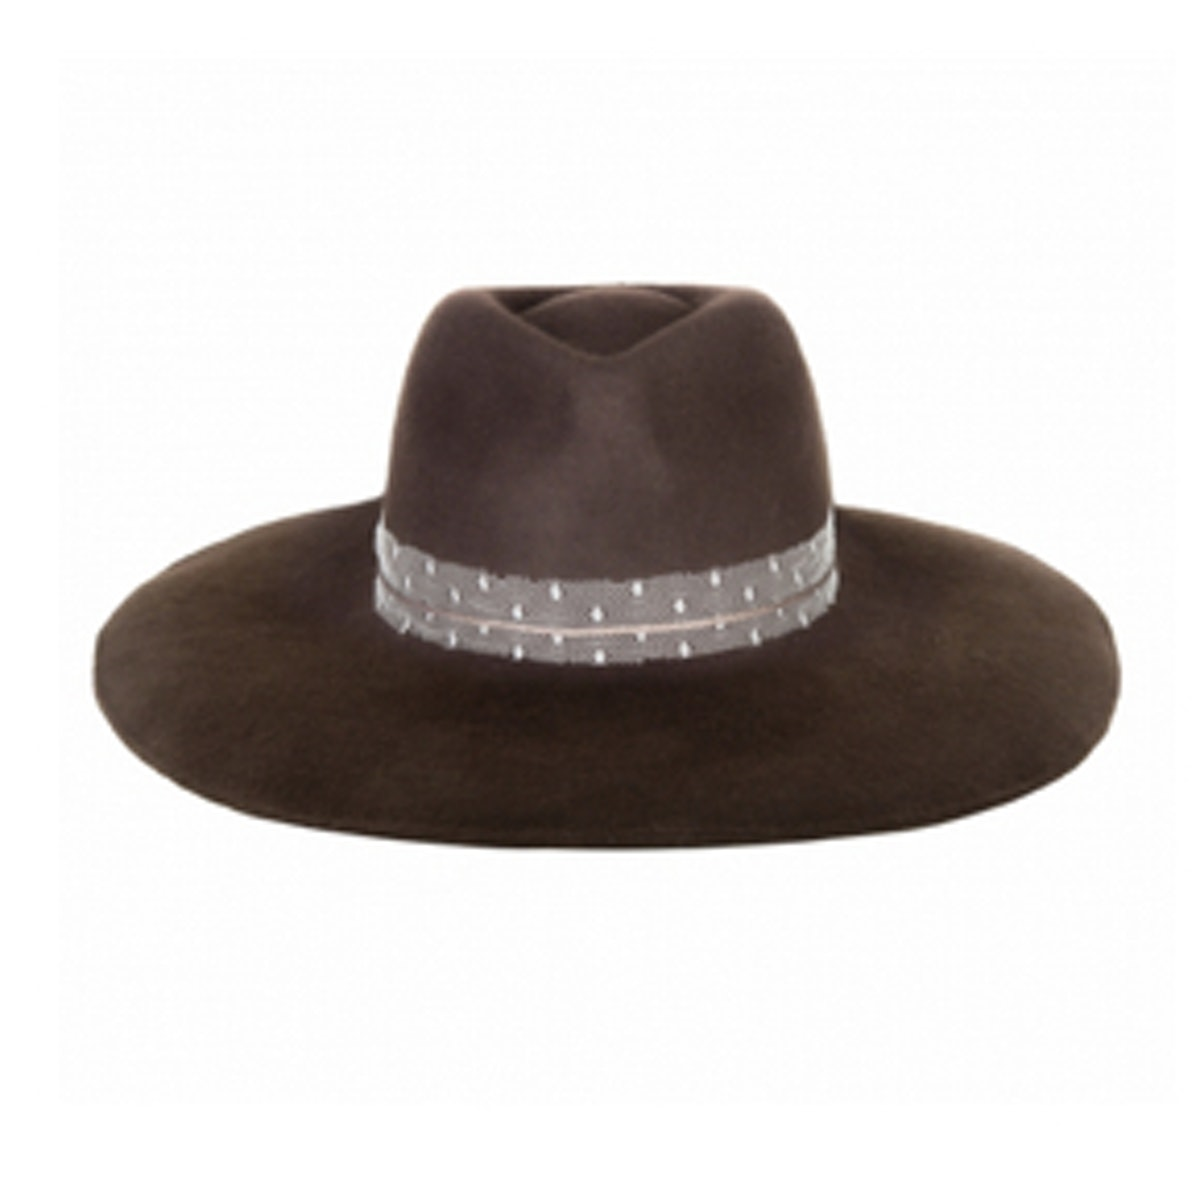 Into the Brown Floppy Hat